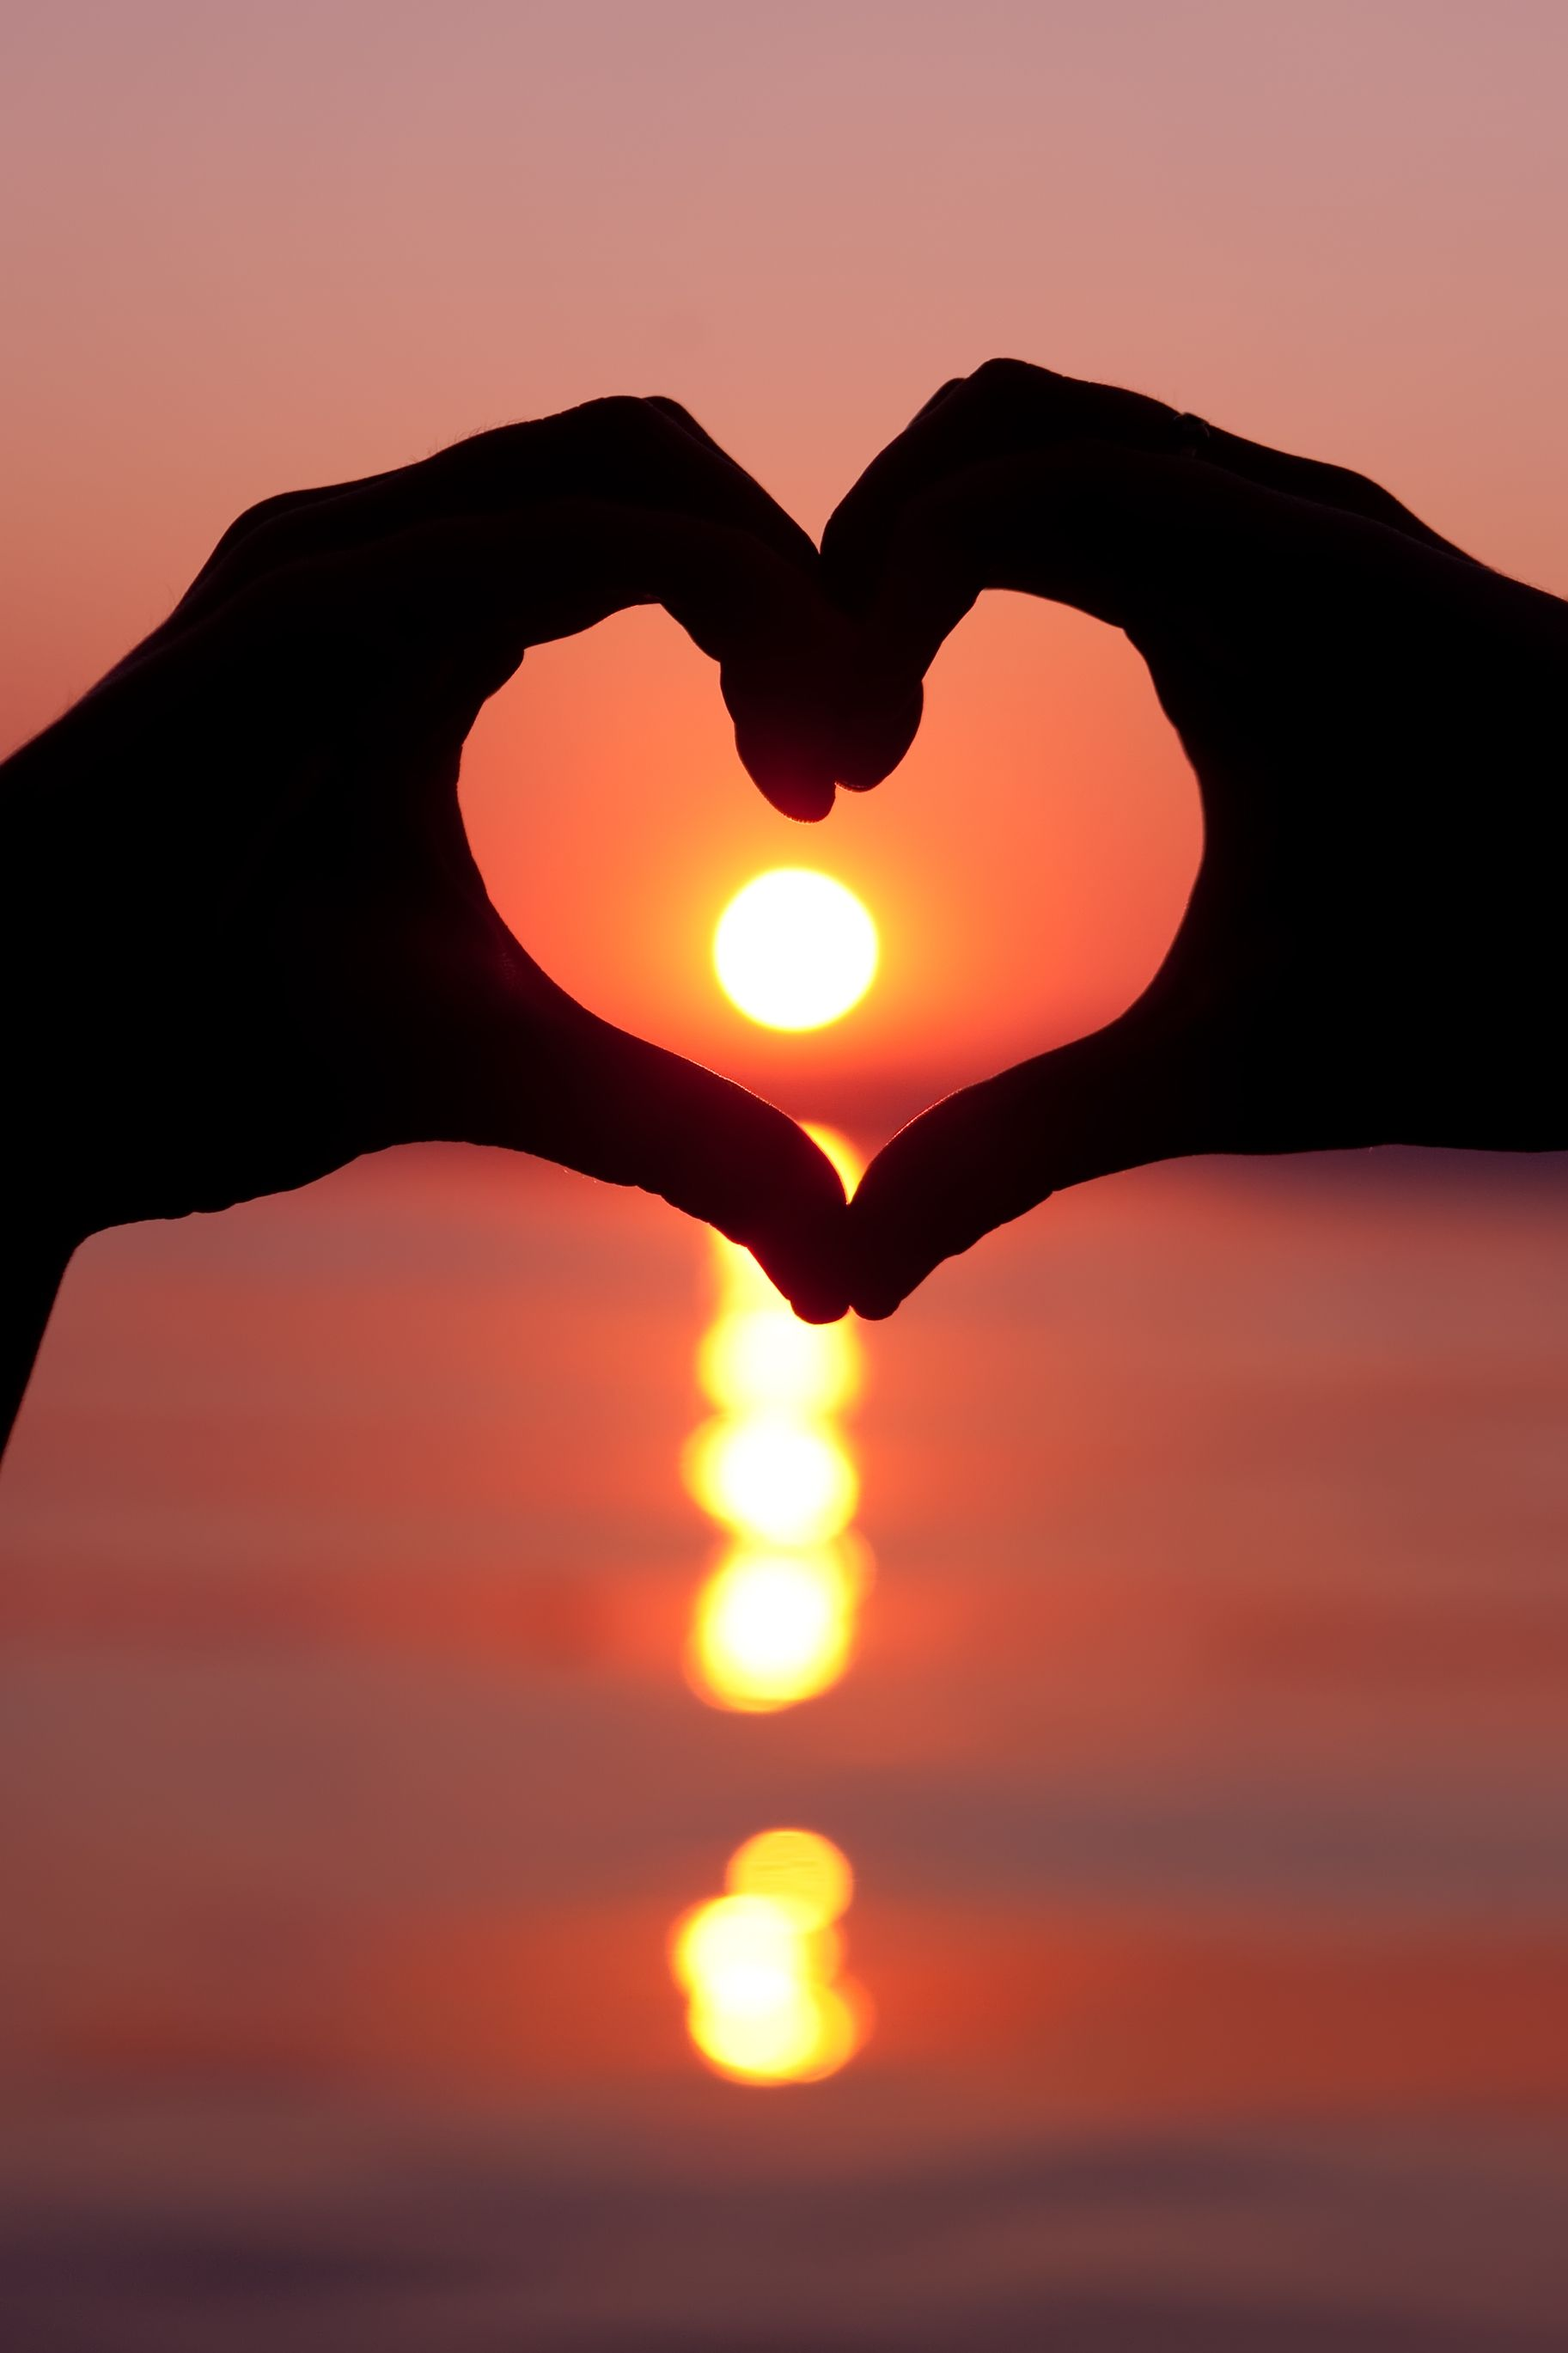 hand hearts in sunset - HD1825×2738